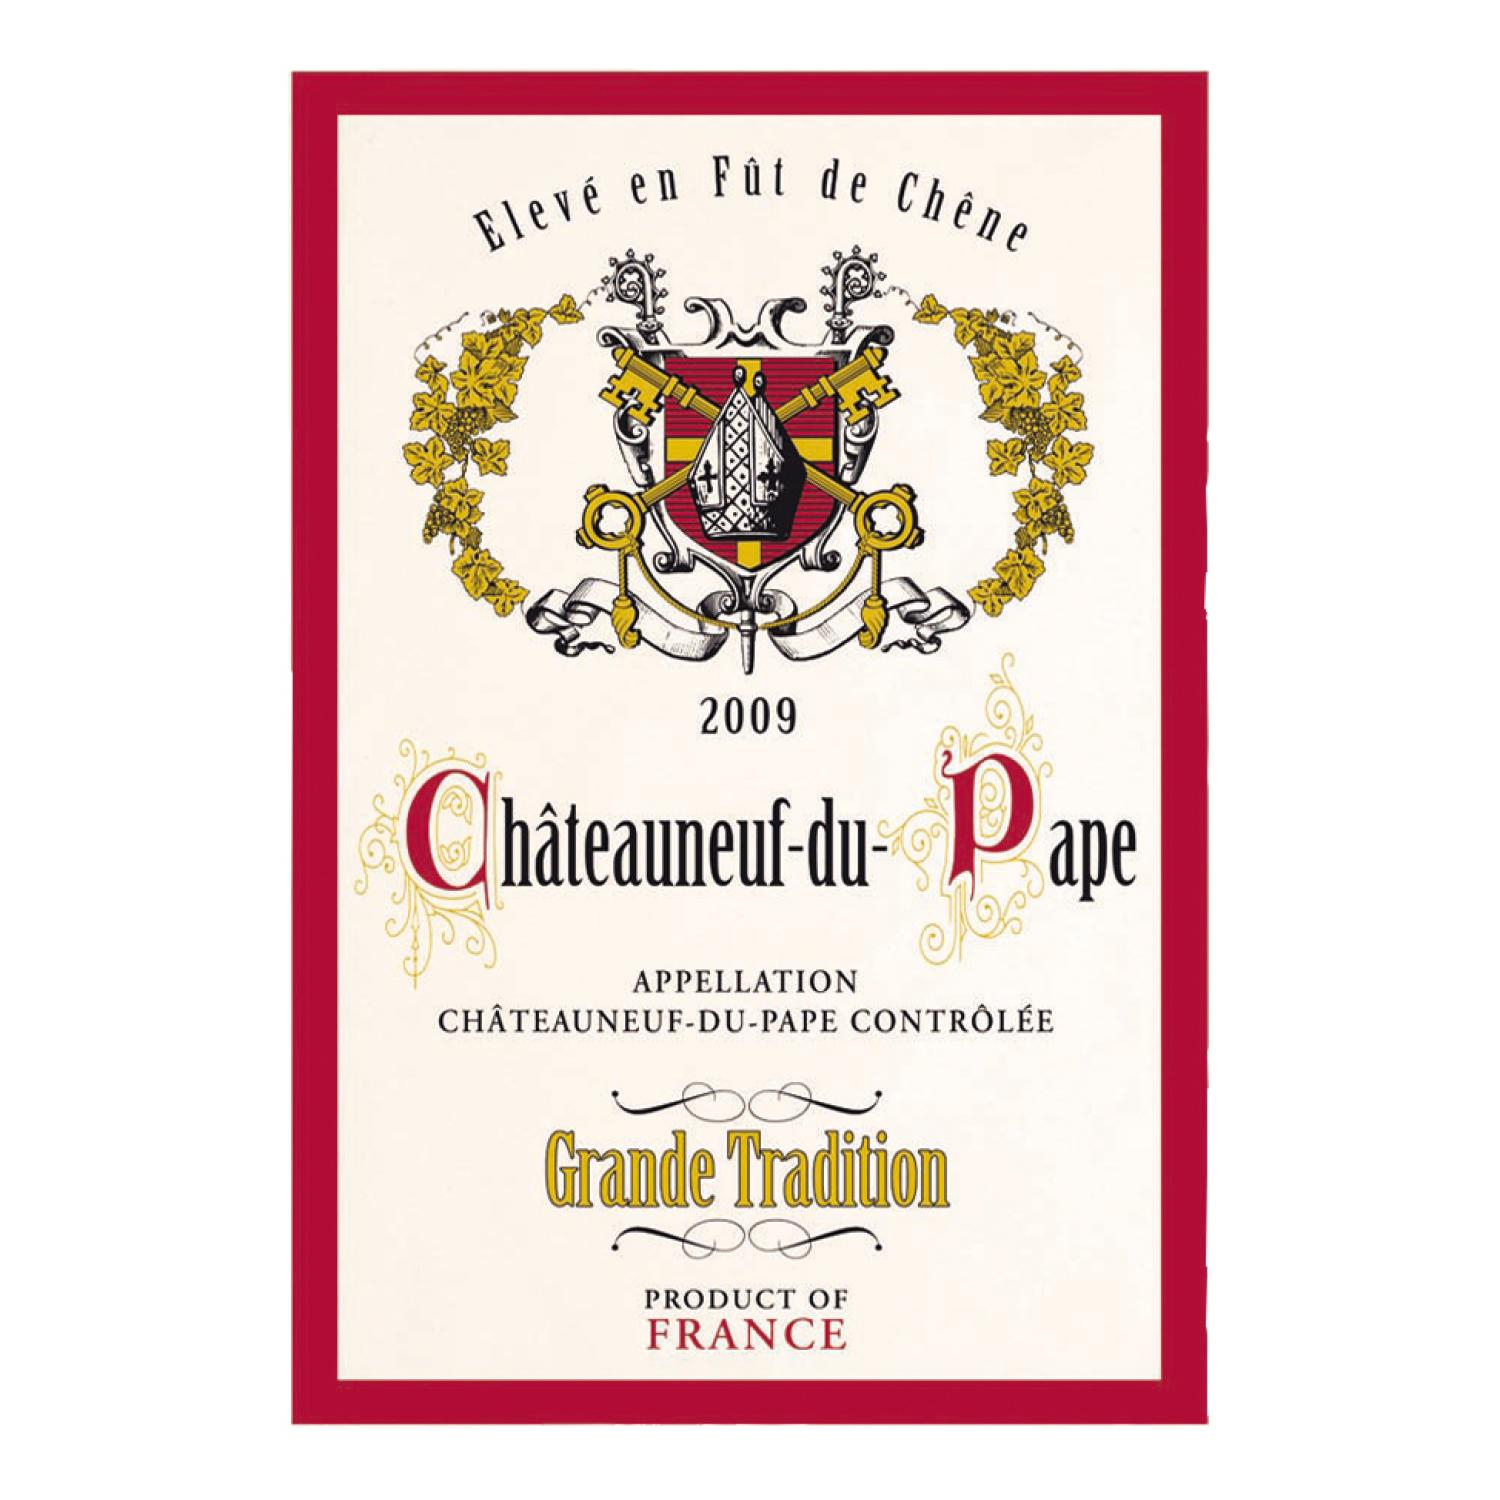 Torchon Chateau Neuf Gde Tradition